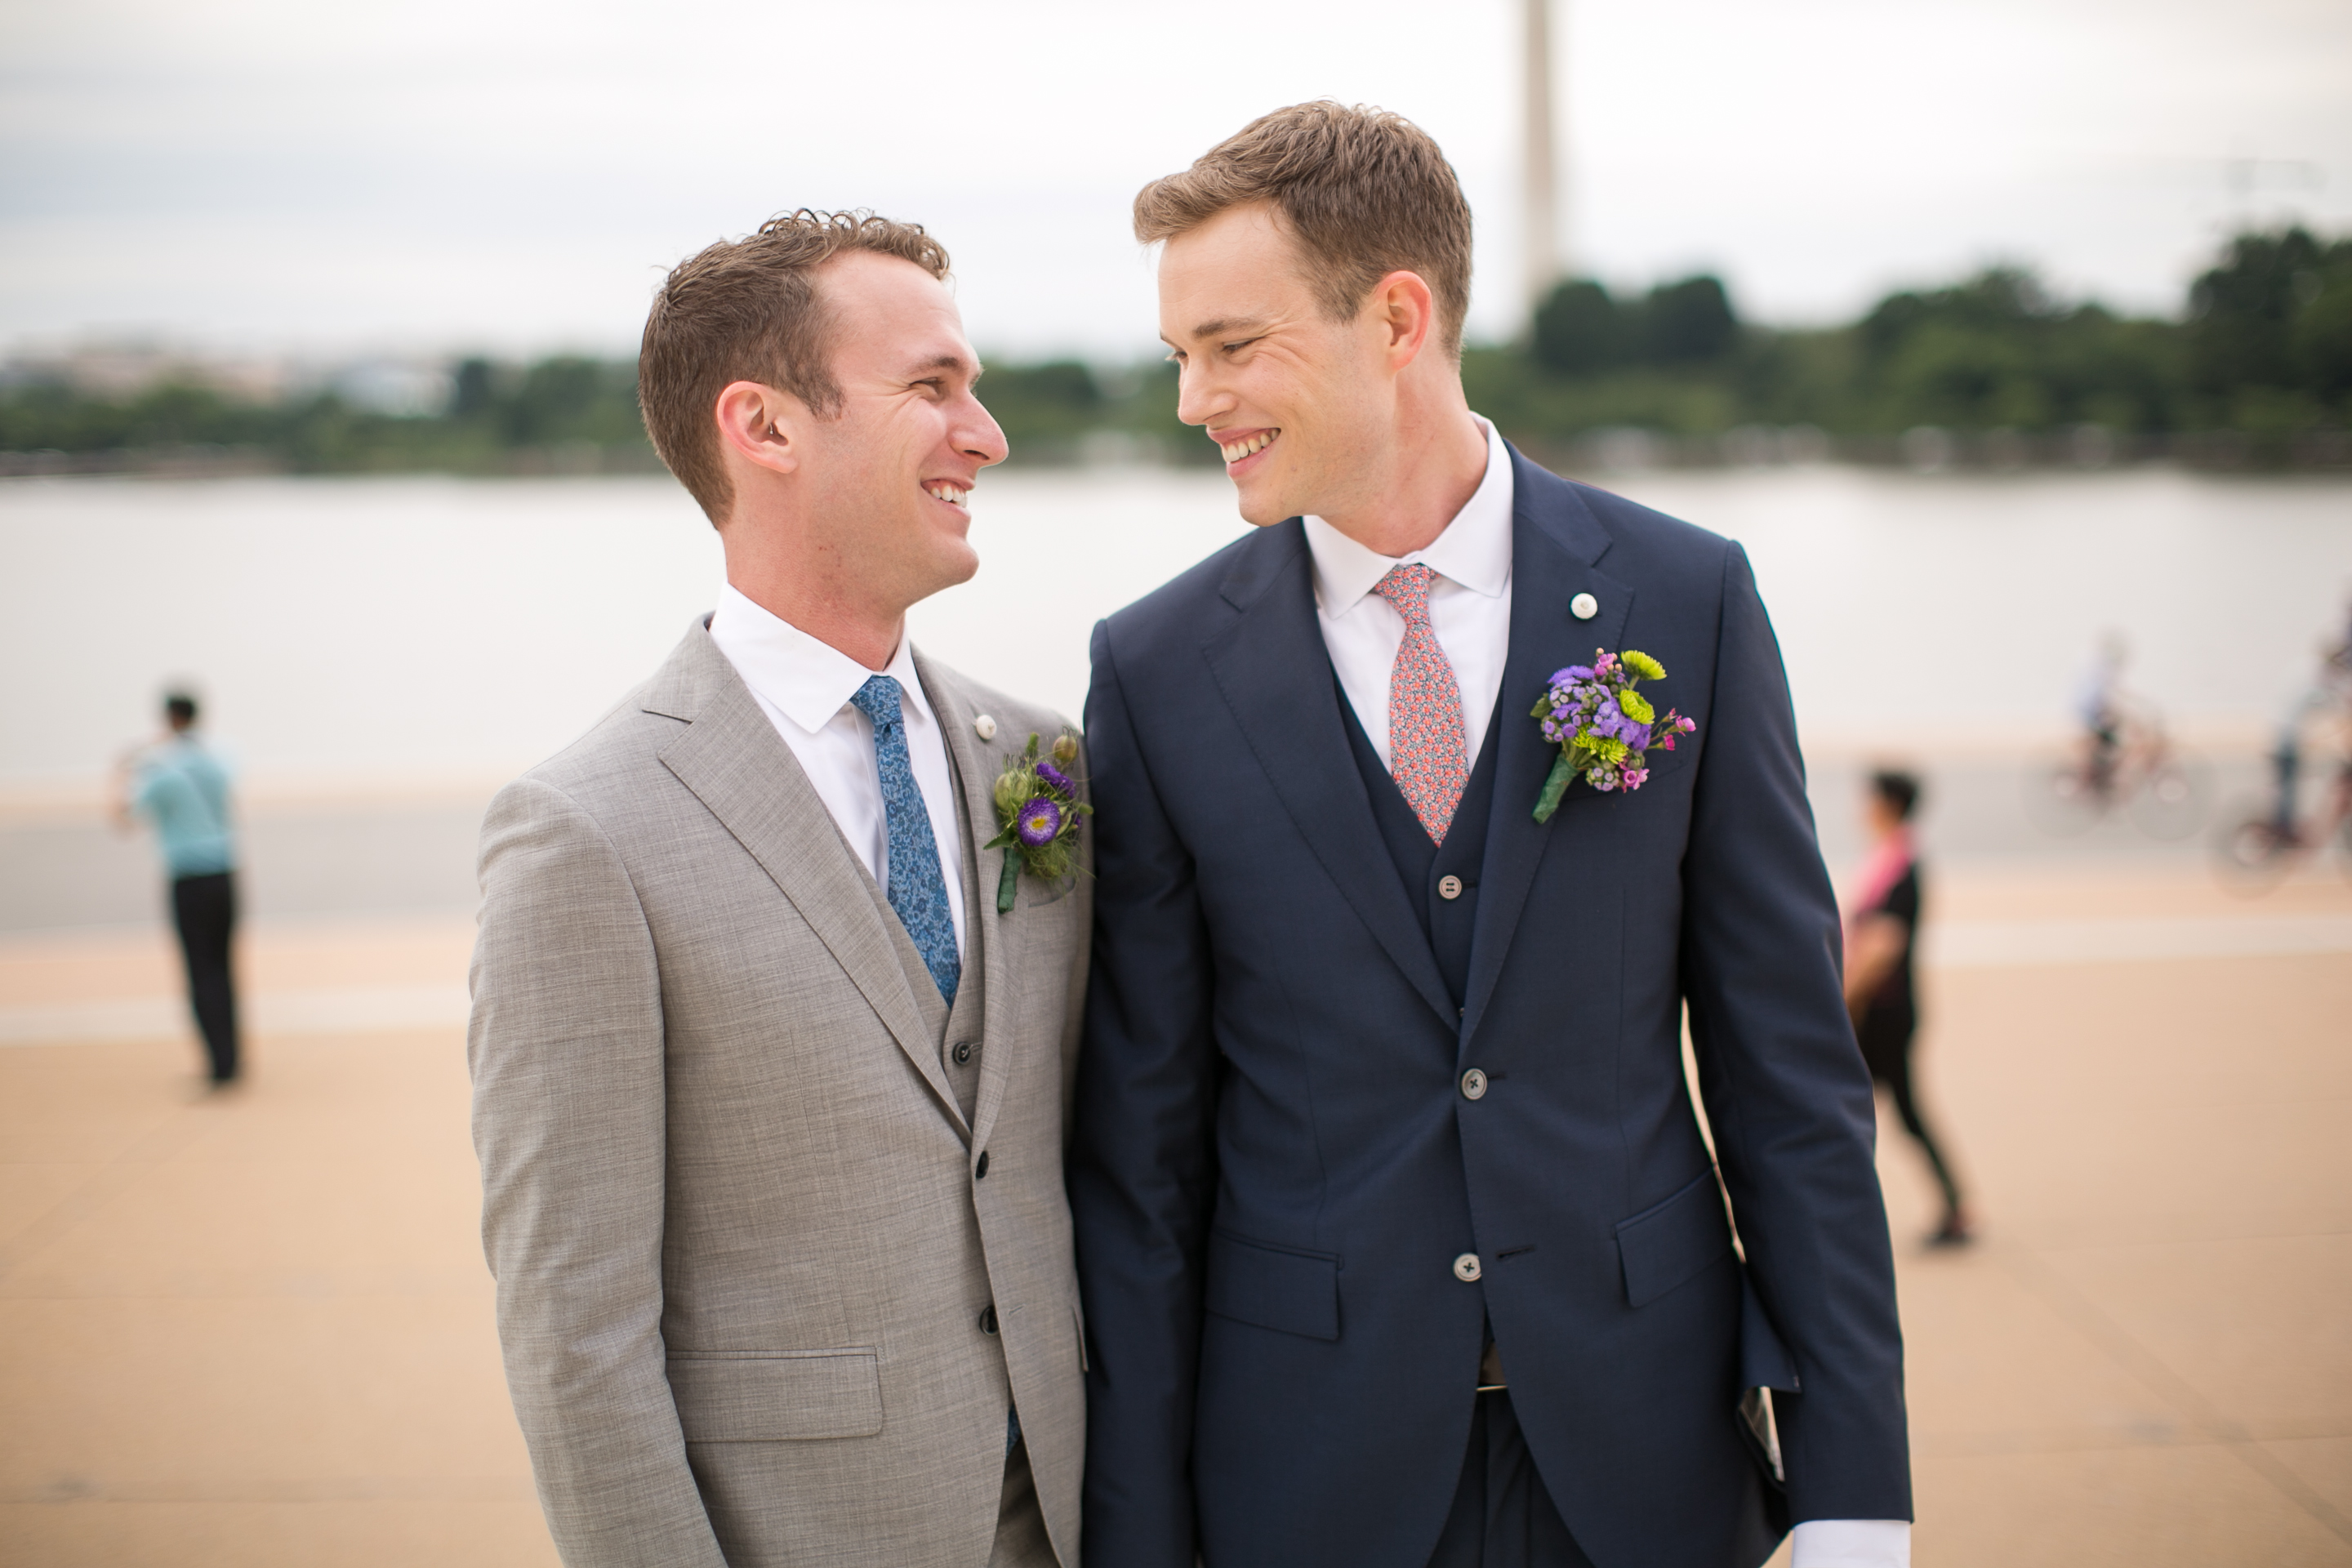 California gay weddings on hold 10